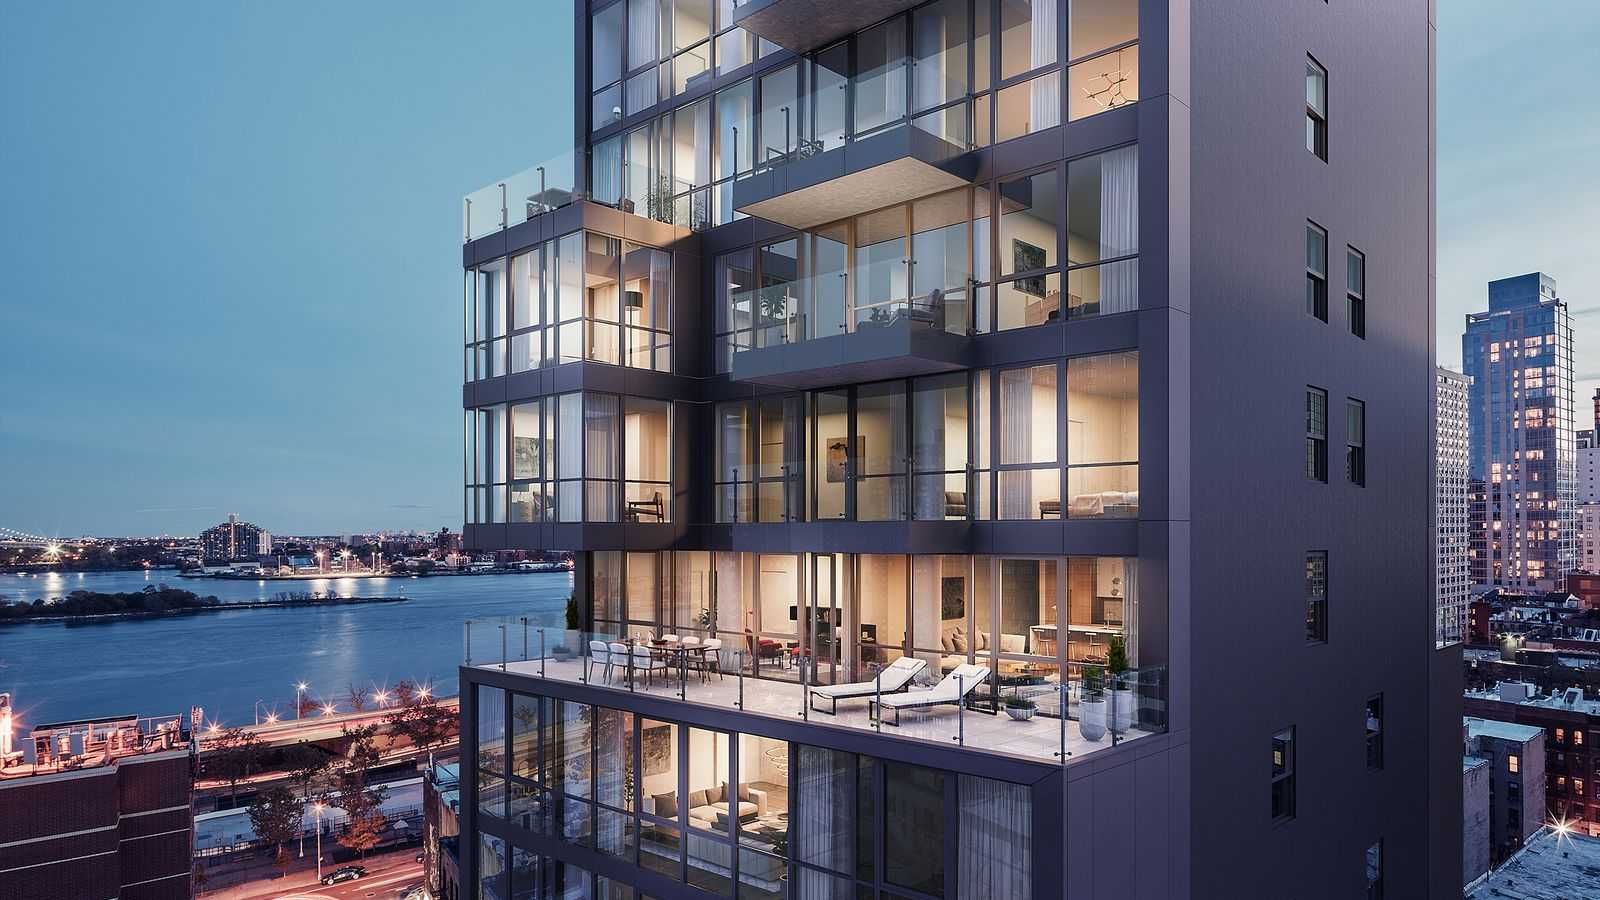 Upper east side condo vitre launches sales from 915k for Apartments nyc for sale